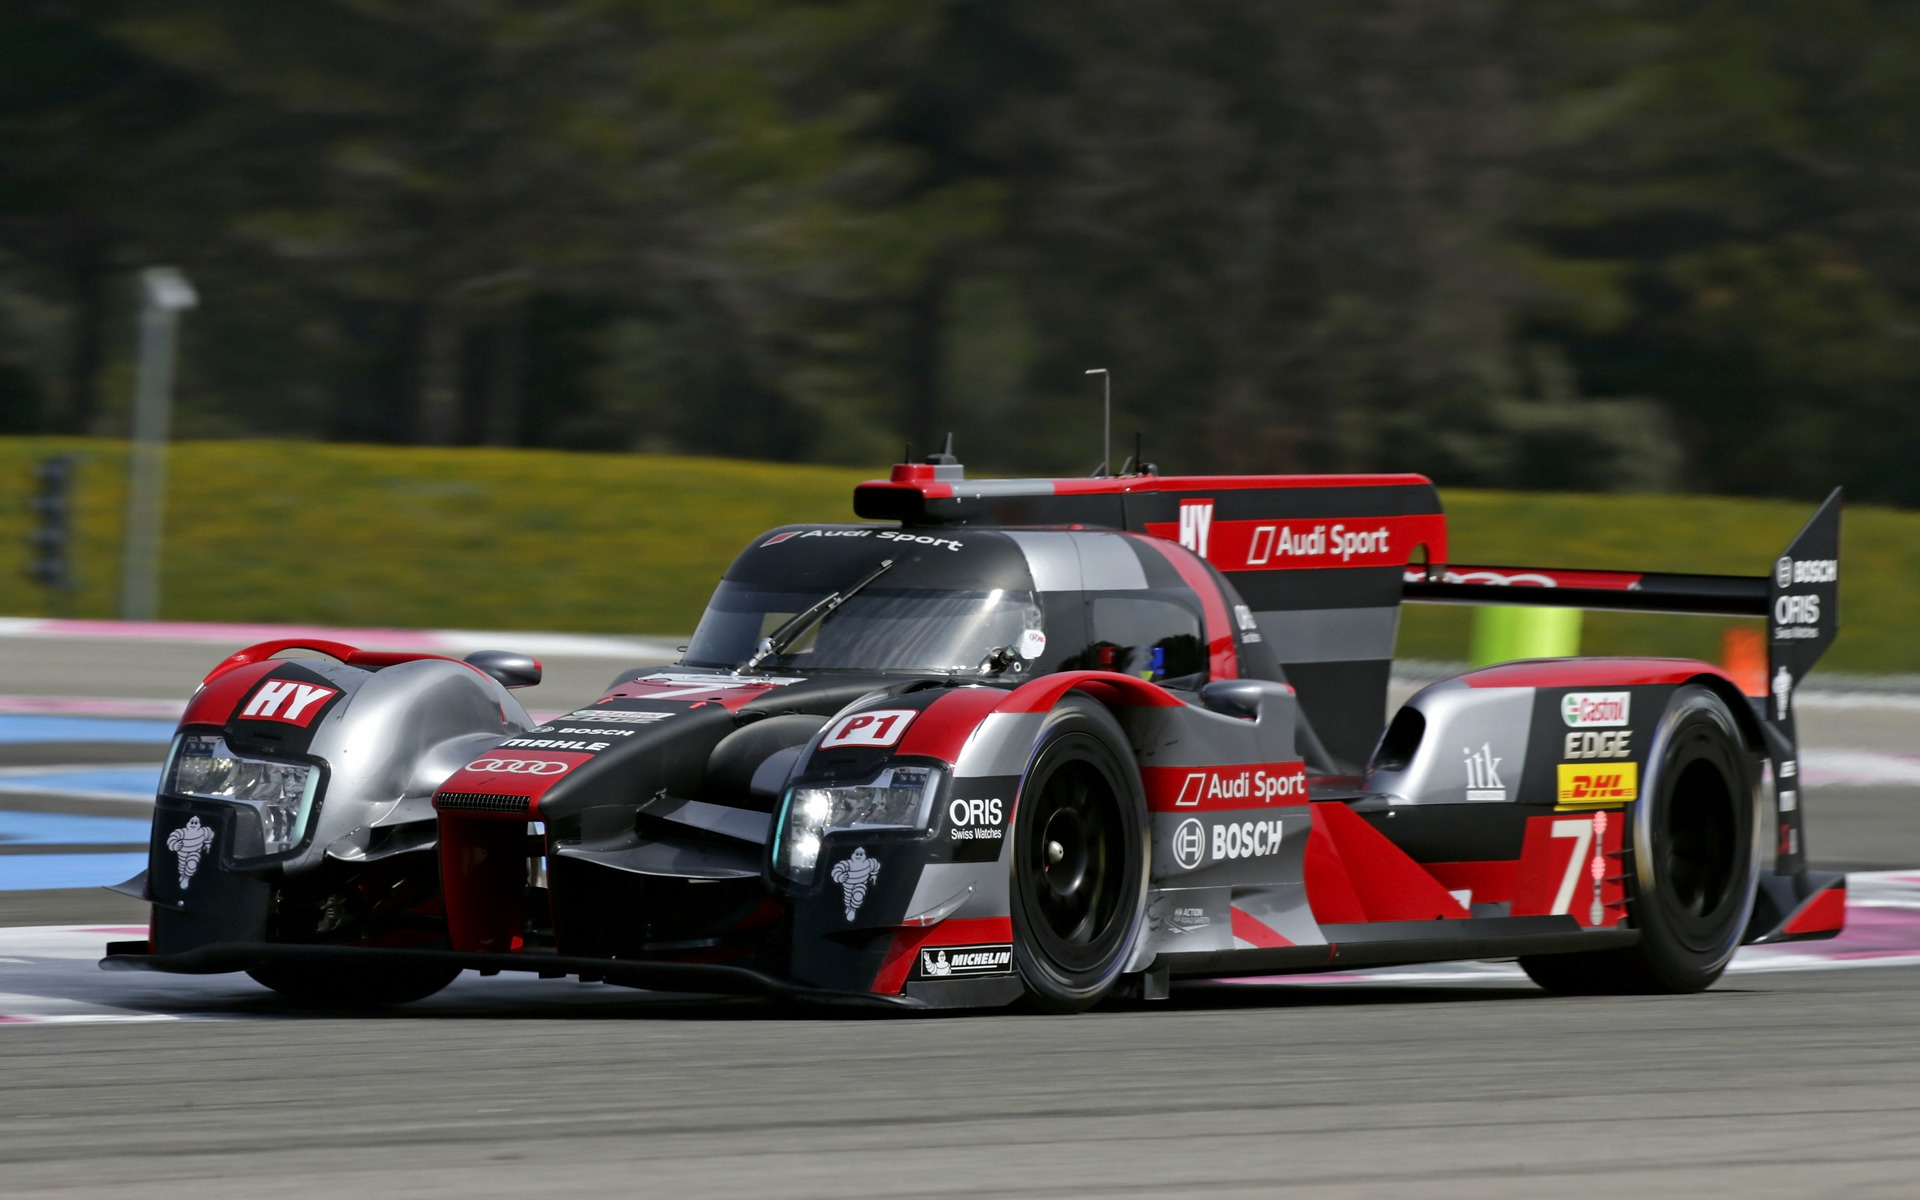 Audi R18 e-tron quattro (2016) Wallpapers and HD Images - Car Pixel